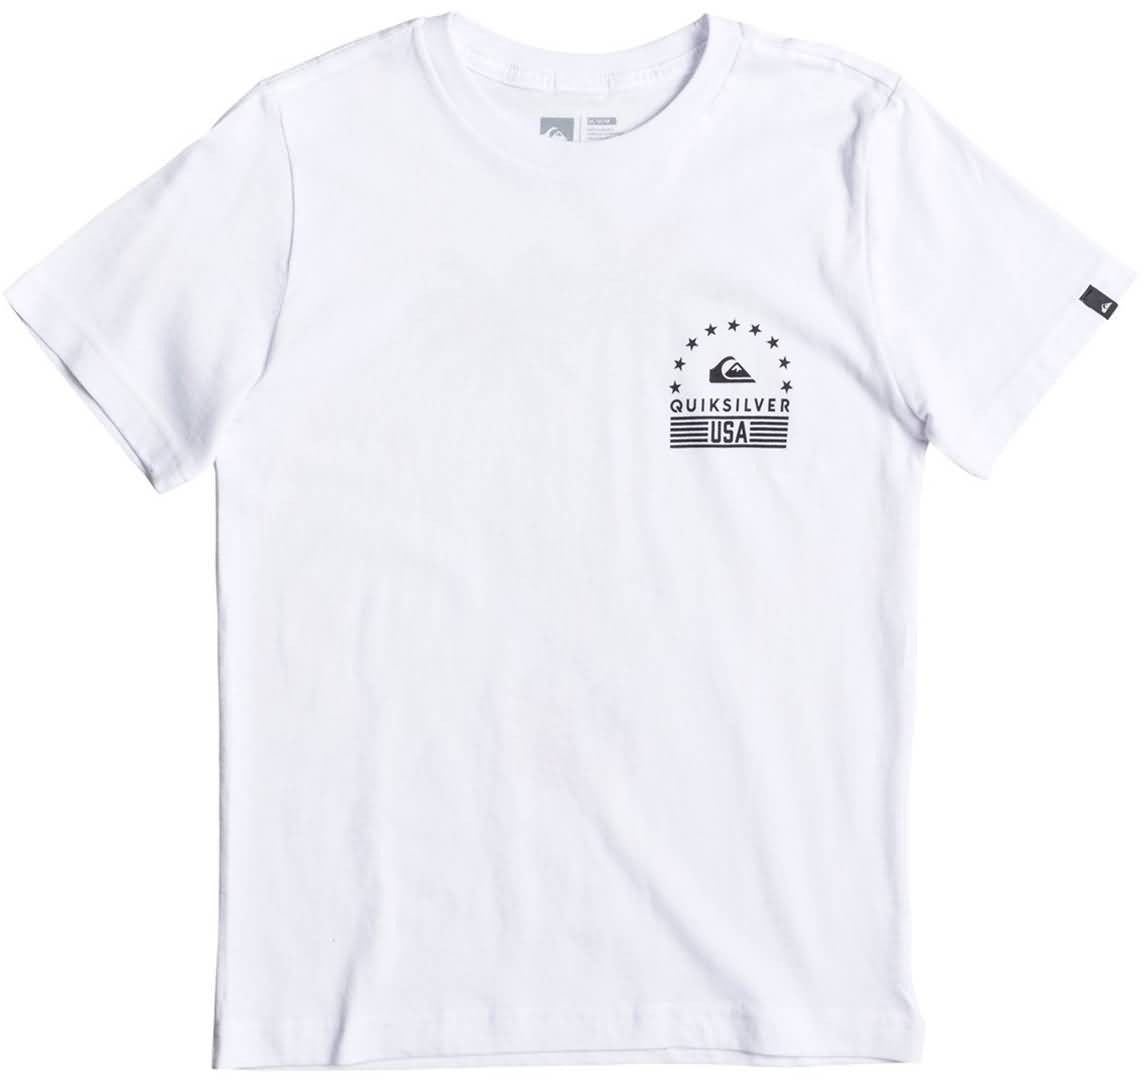 Quiksilver Summer 2017 Apparel | Youth Boys Lifestyle Tees